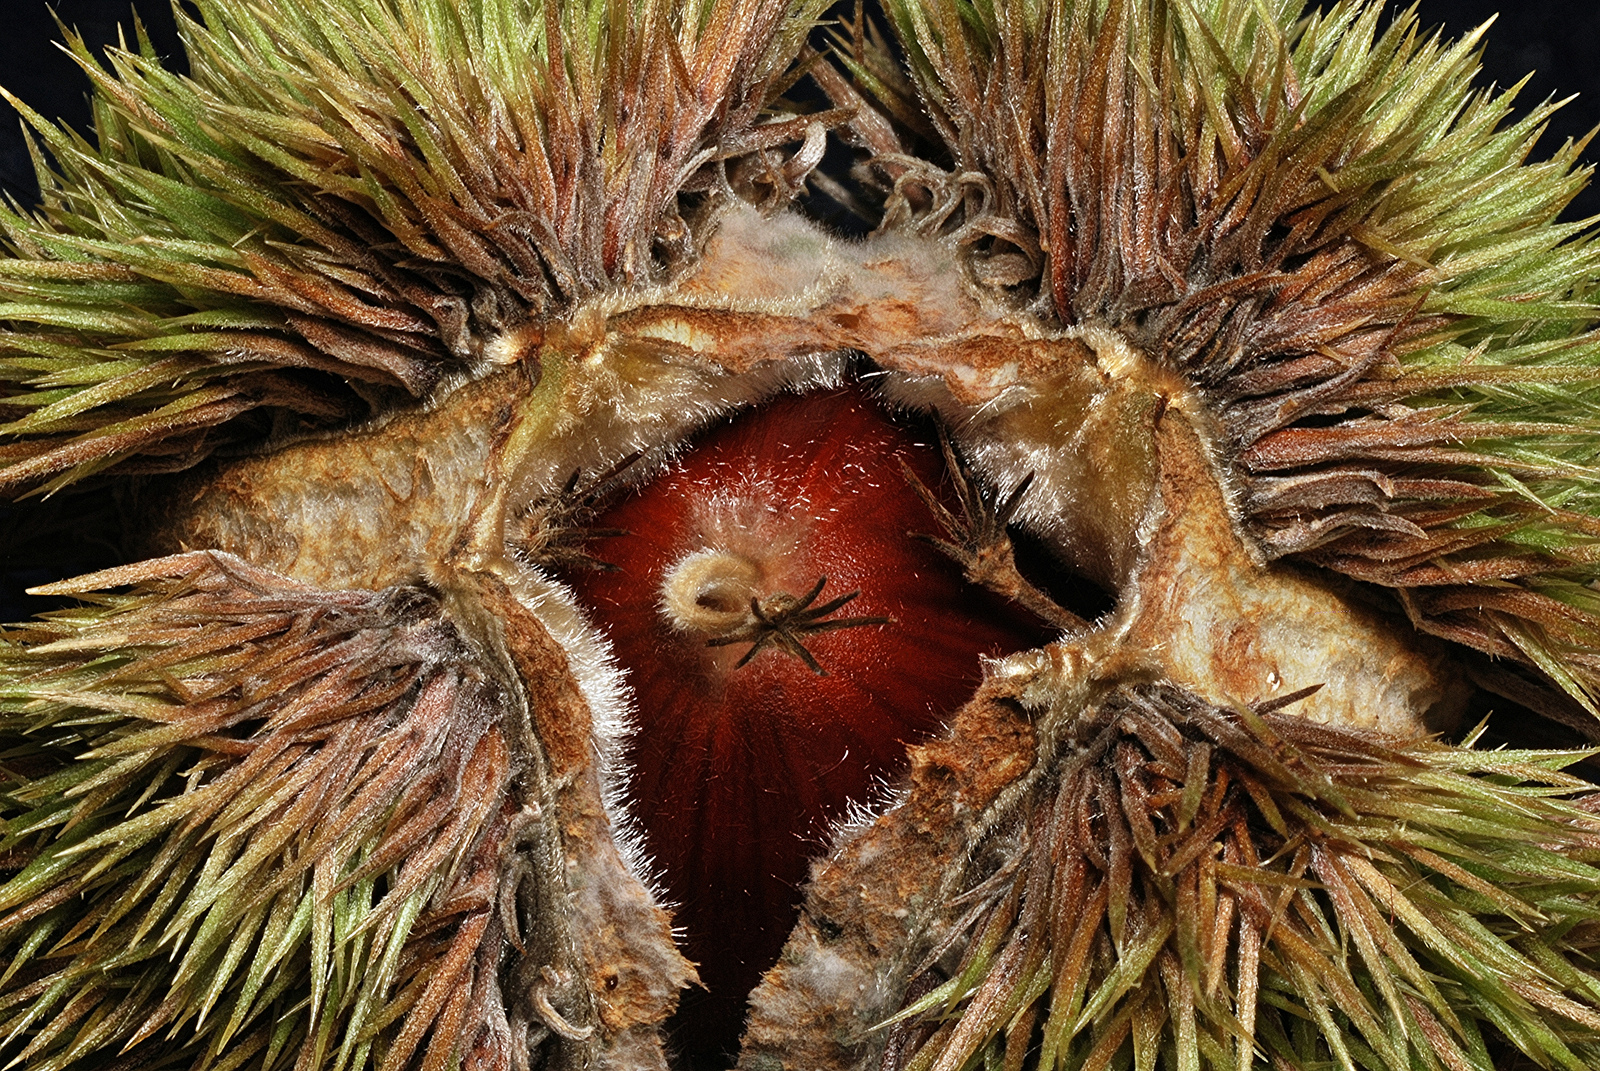 Fruit of <i>Castanea mollissima</i>